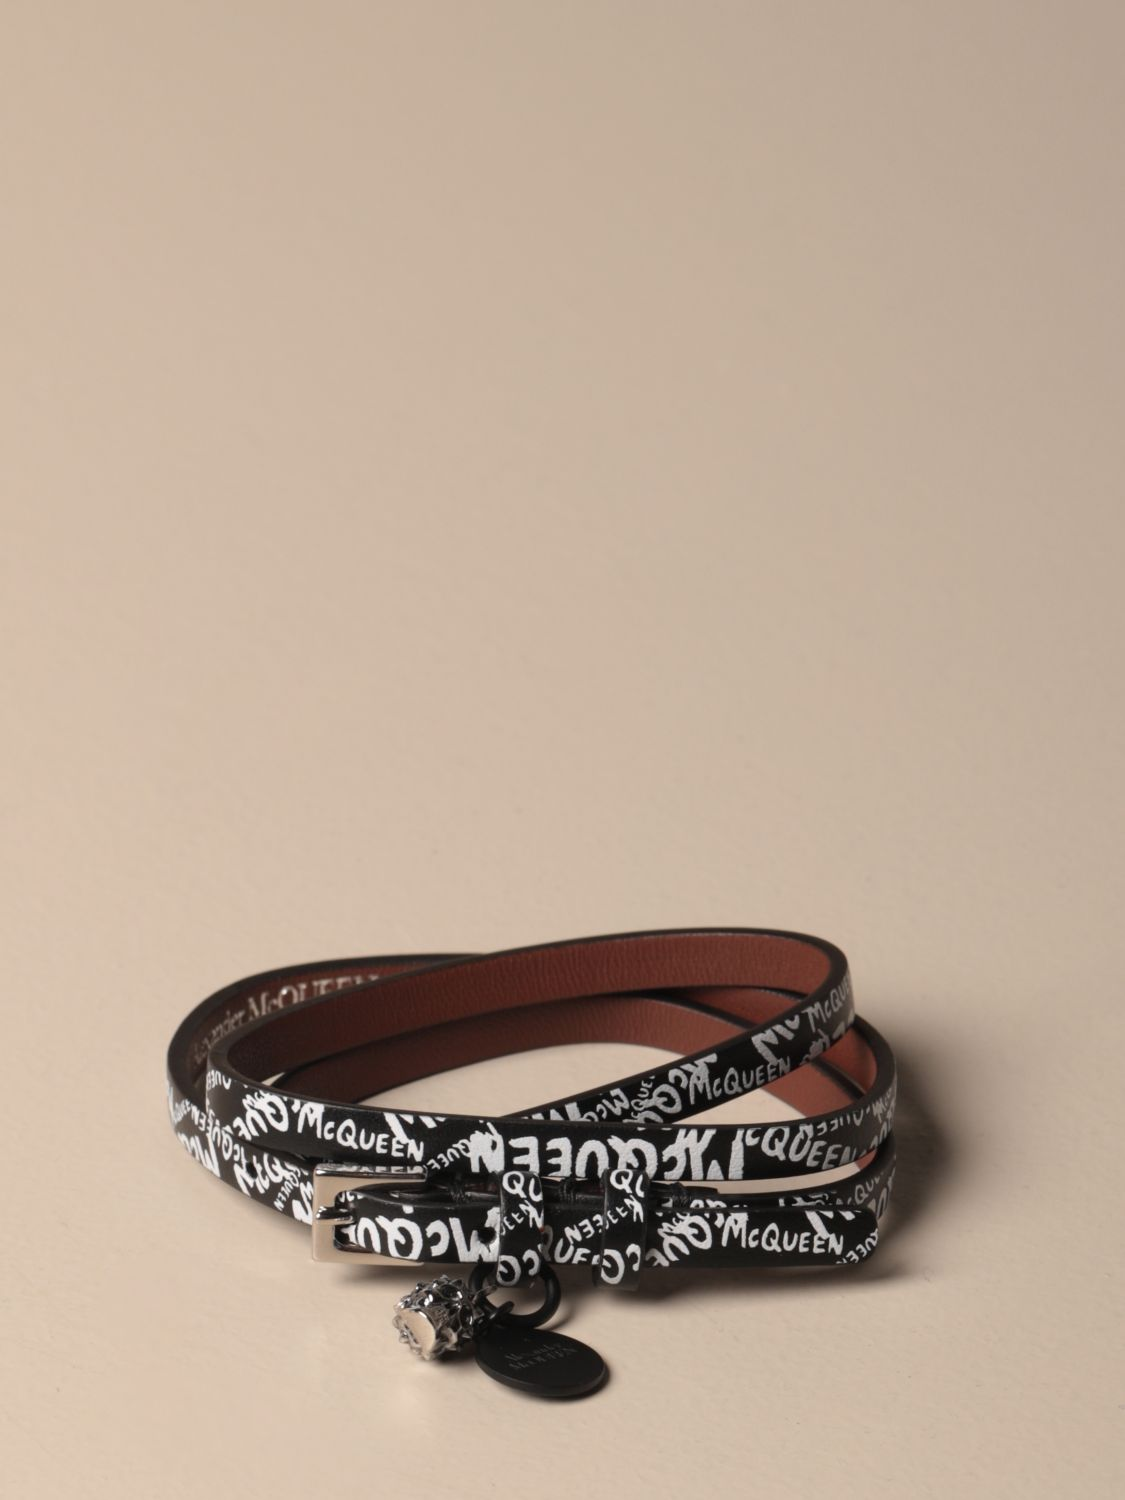 Jewel Mcq Mcqueen: Mcq McQueen leather bracelet with all over logo black 1